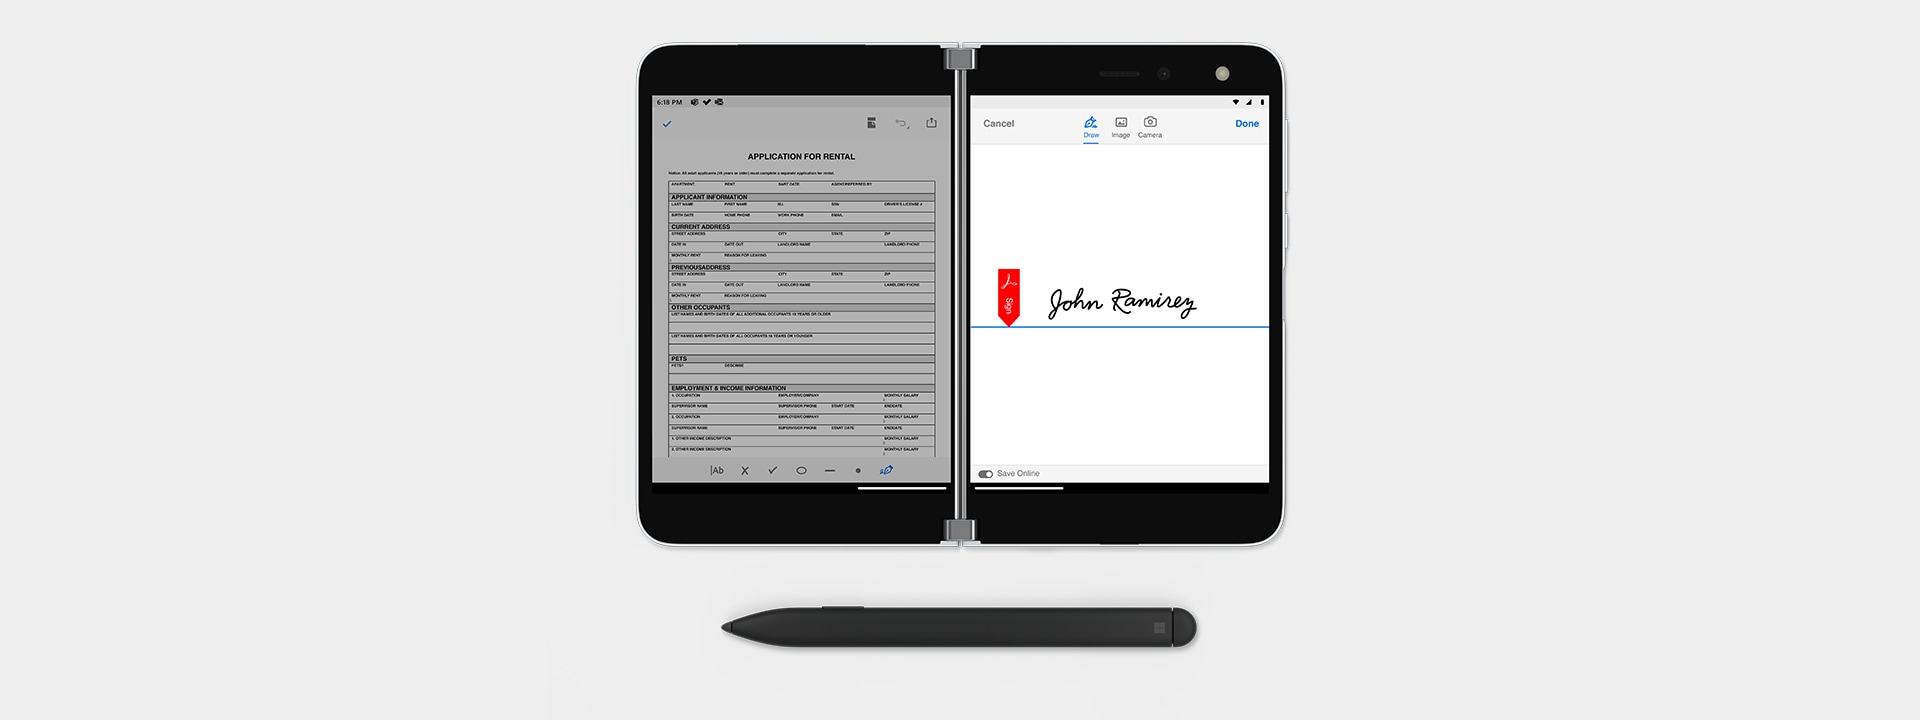 Surface Duo showing an application on the left side of the screen, a signature on the right, and a touch pen below.